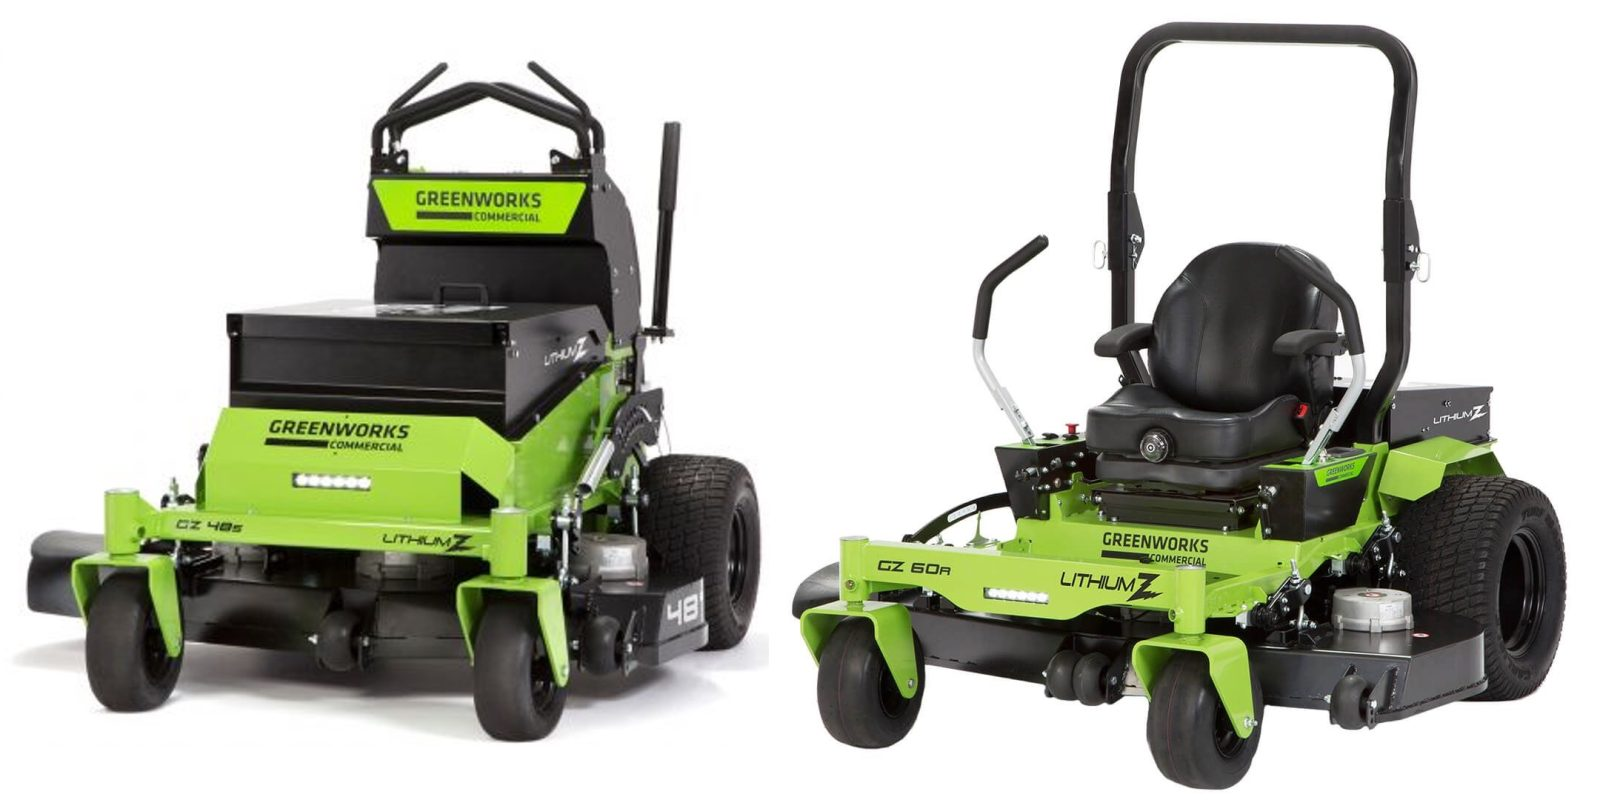 first look: greenworks commercial lithium z industrial